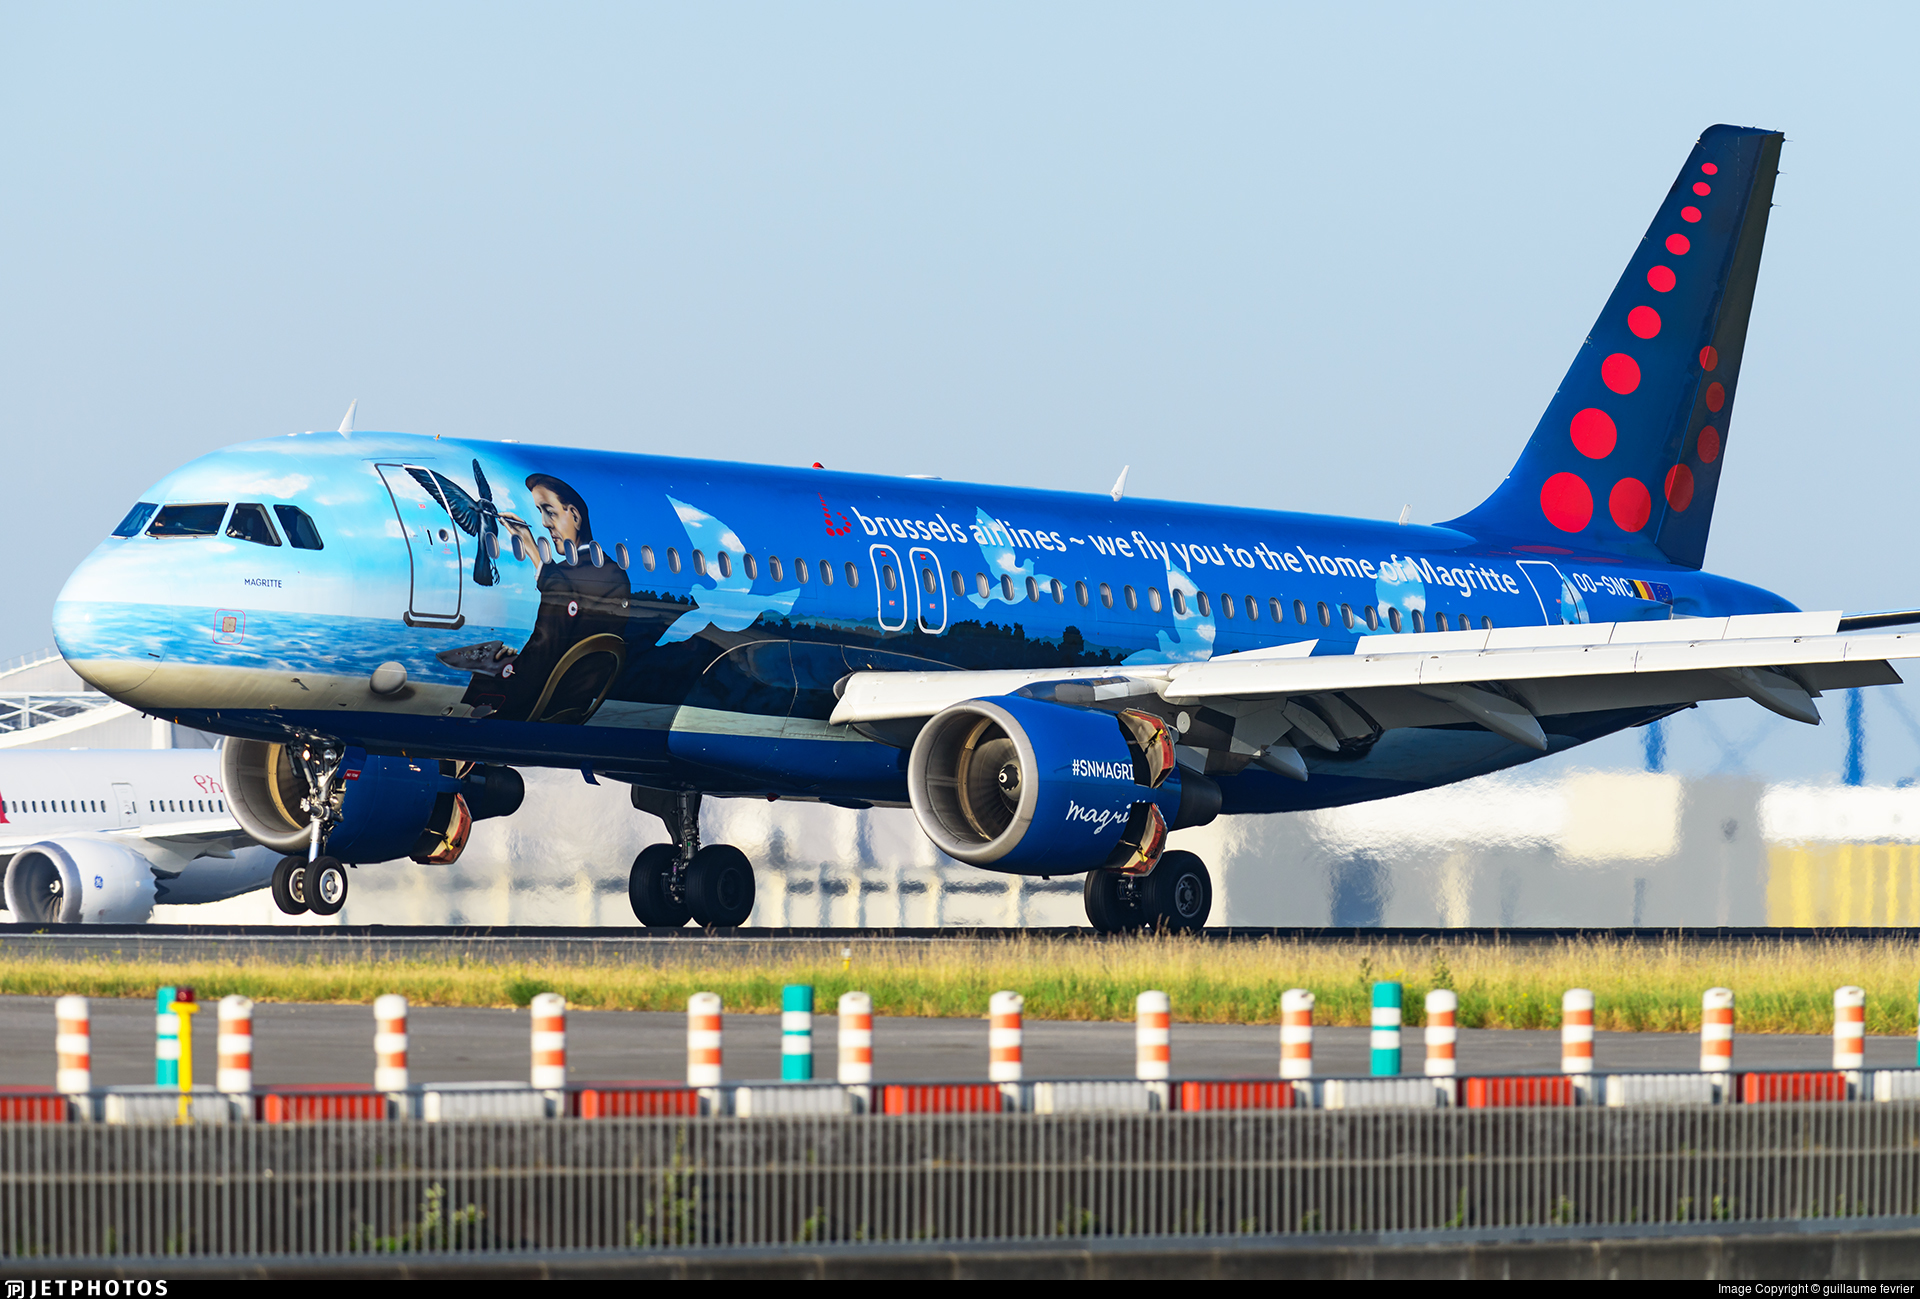 OO-SNC in Magritte livery